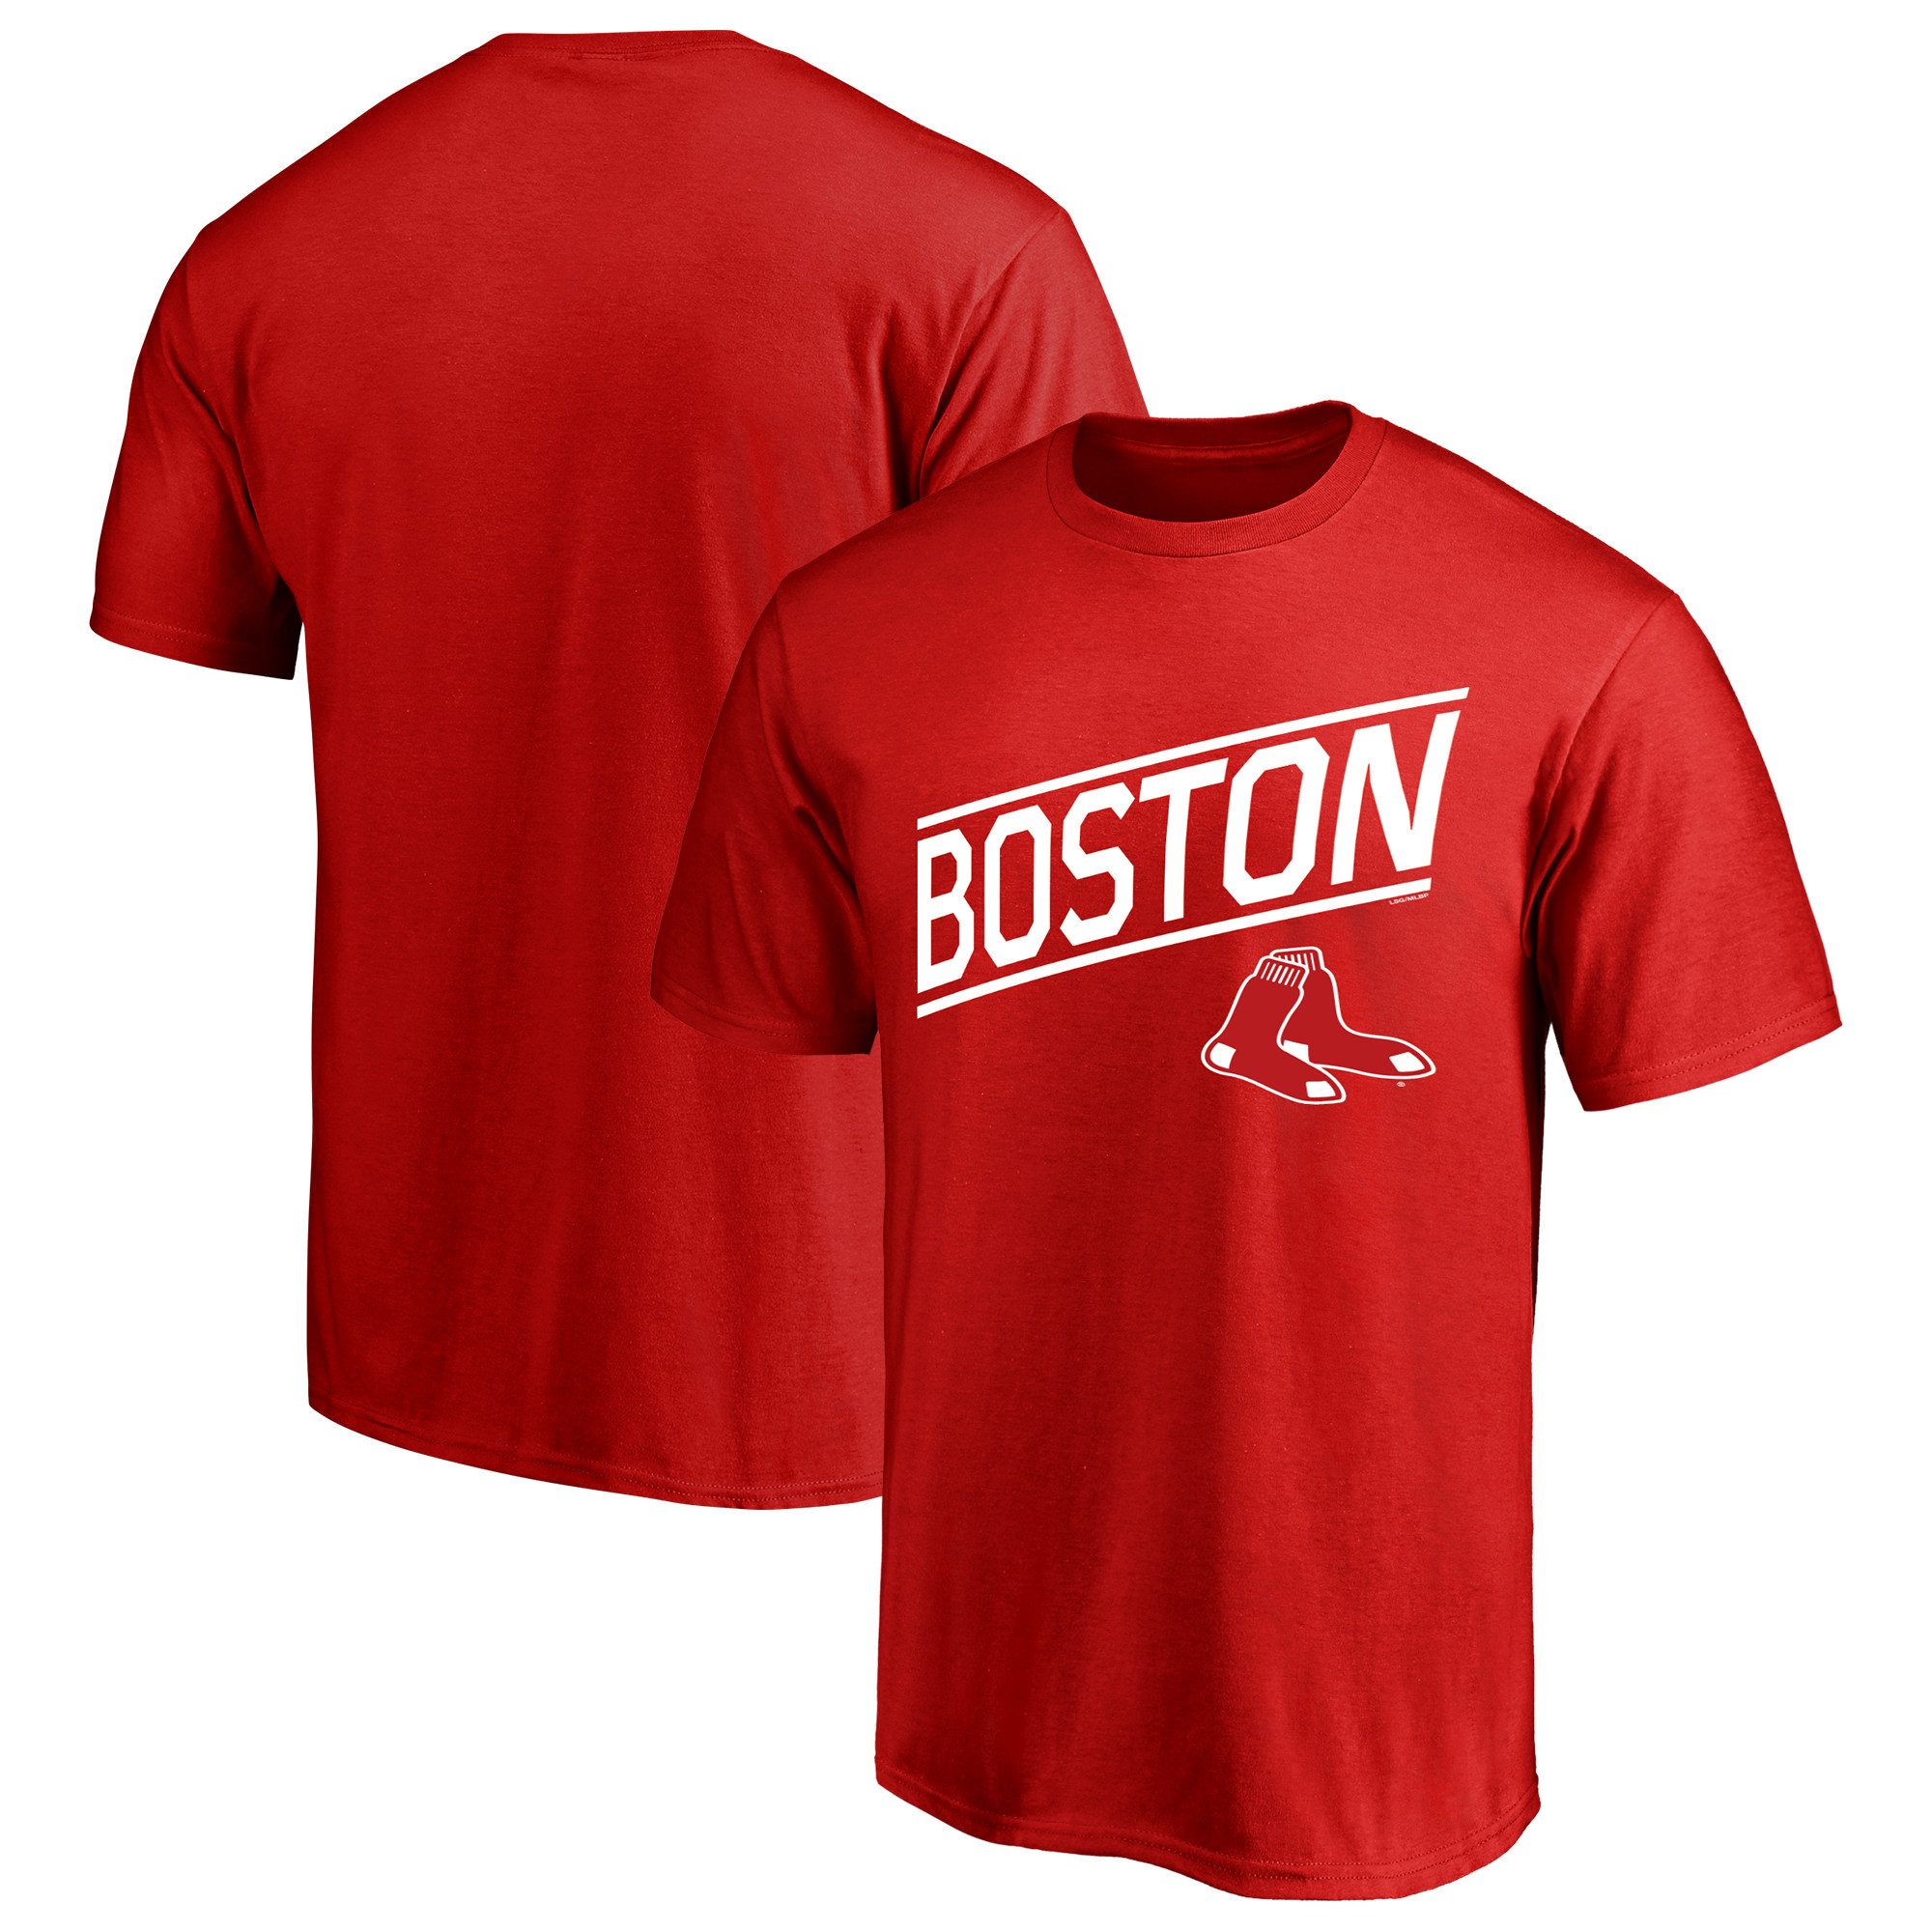 b6147372 Red Sox Shirts Cheap - DREAMWORKS